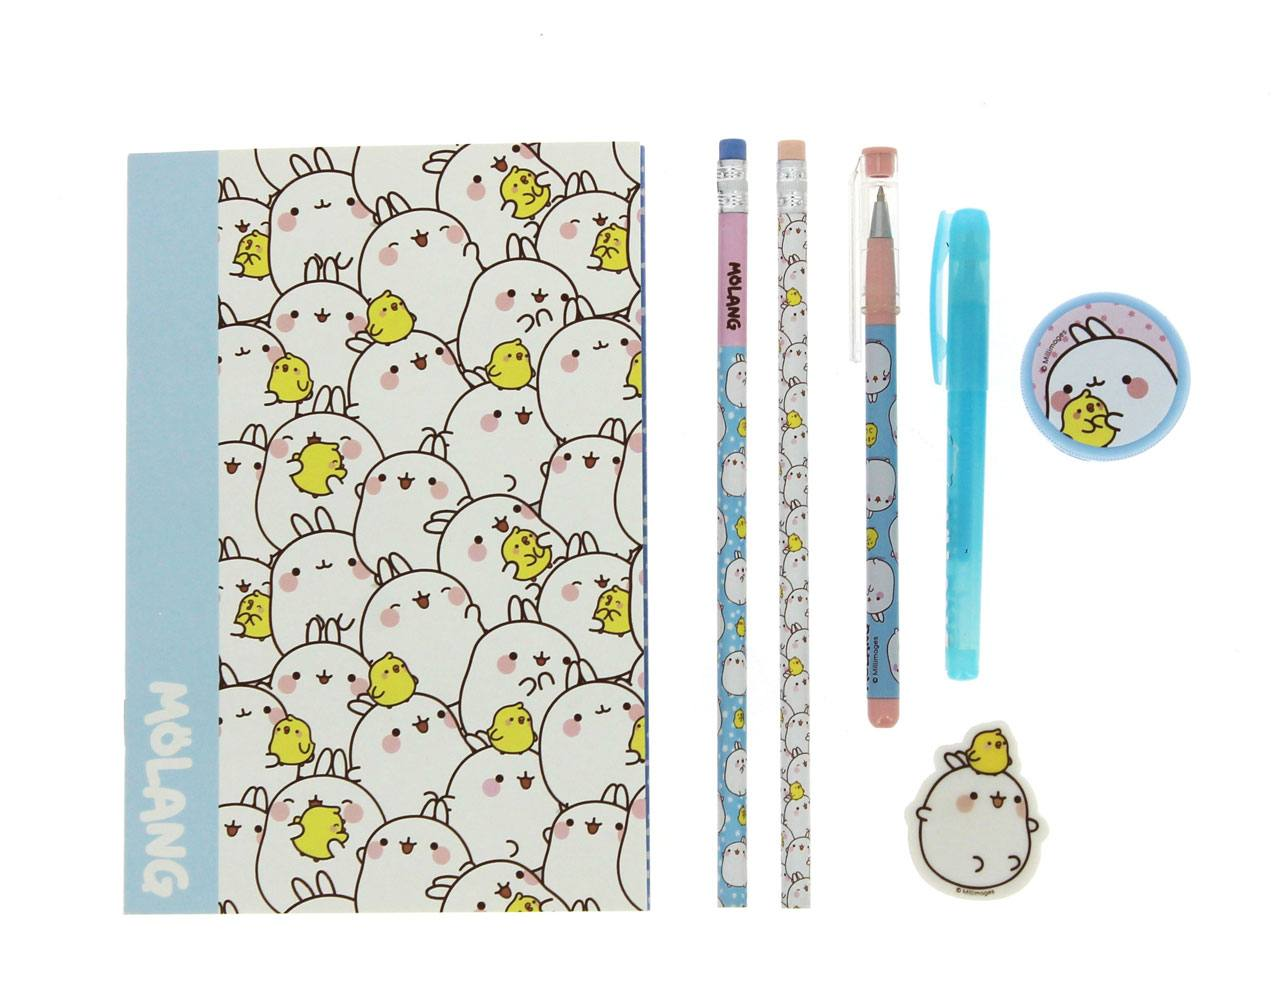 Molang 7-Piece Stationery Set